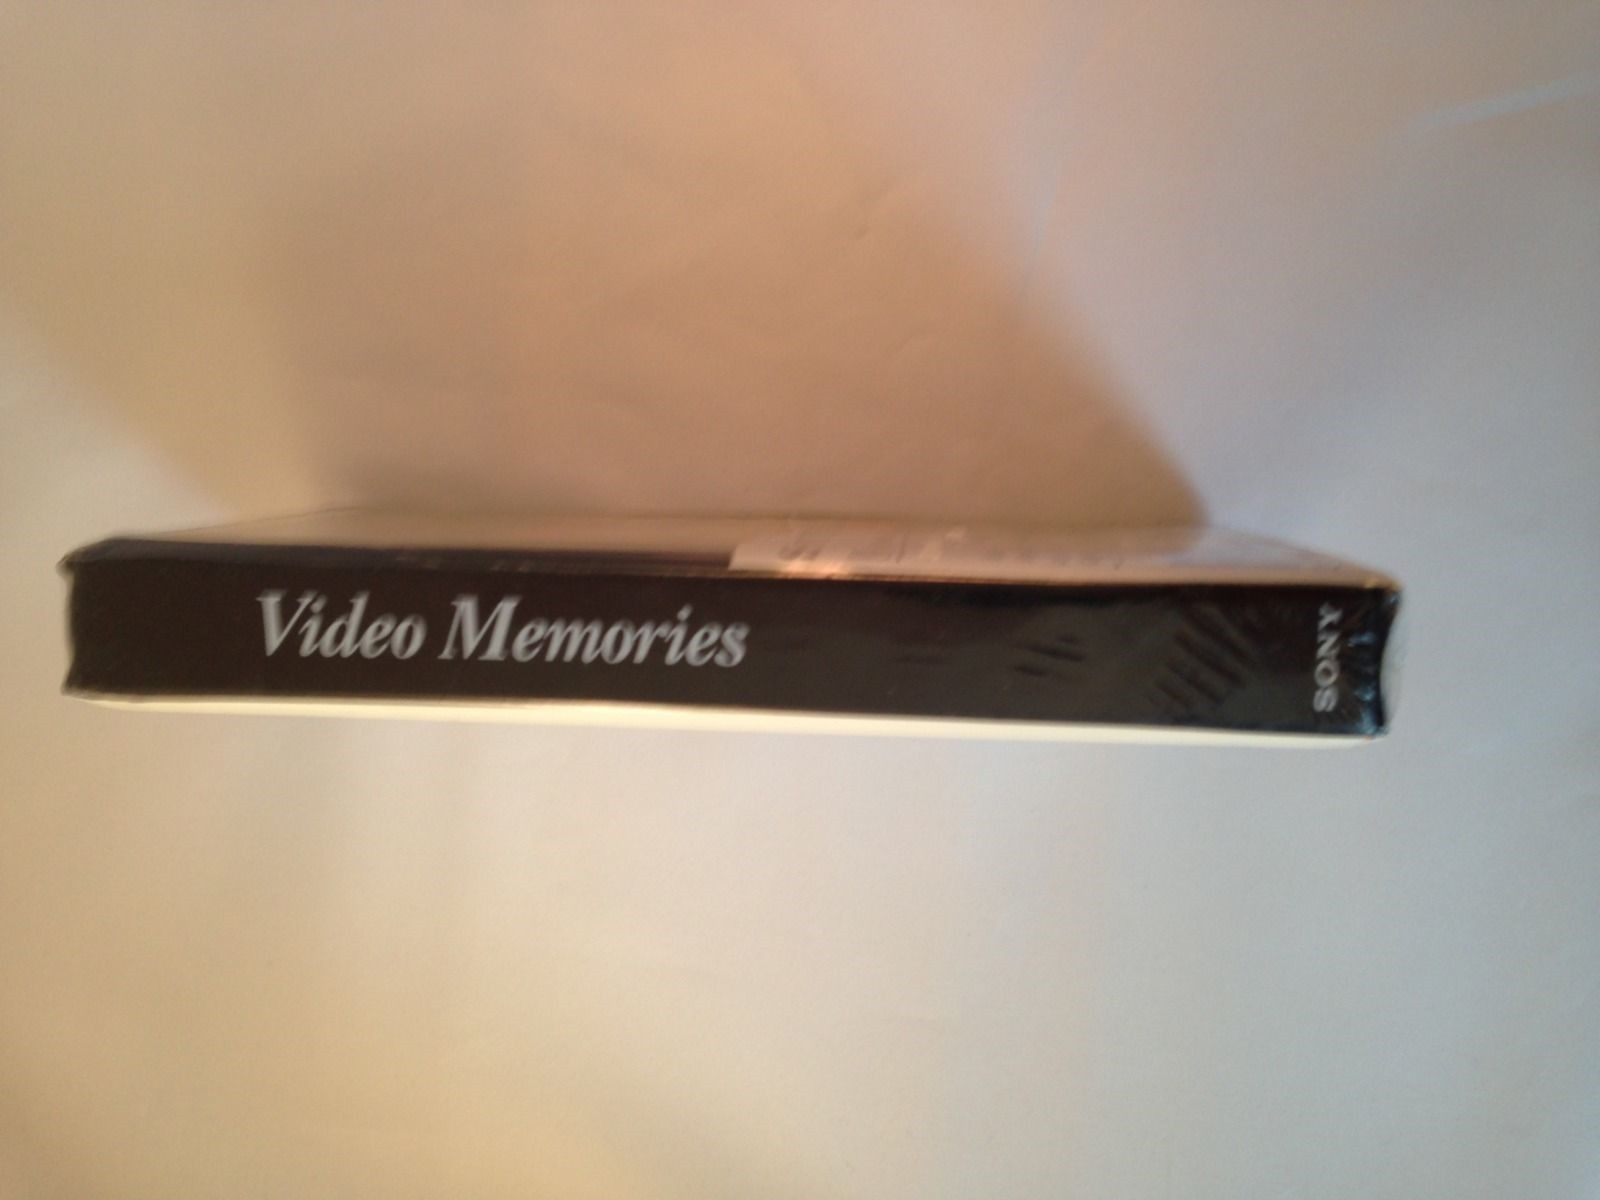 3 SONY P630MP METAL 8MM VIDEO CASSETTES WITH VIDEO MEMORIES CASE image 3